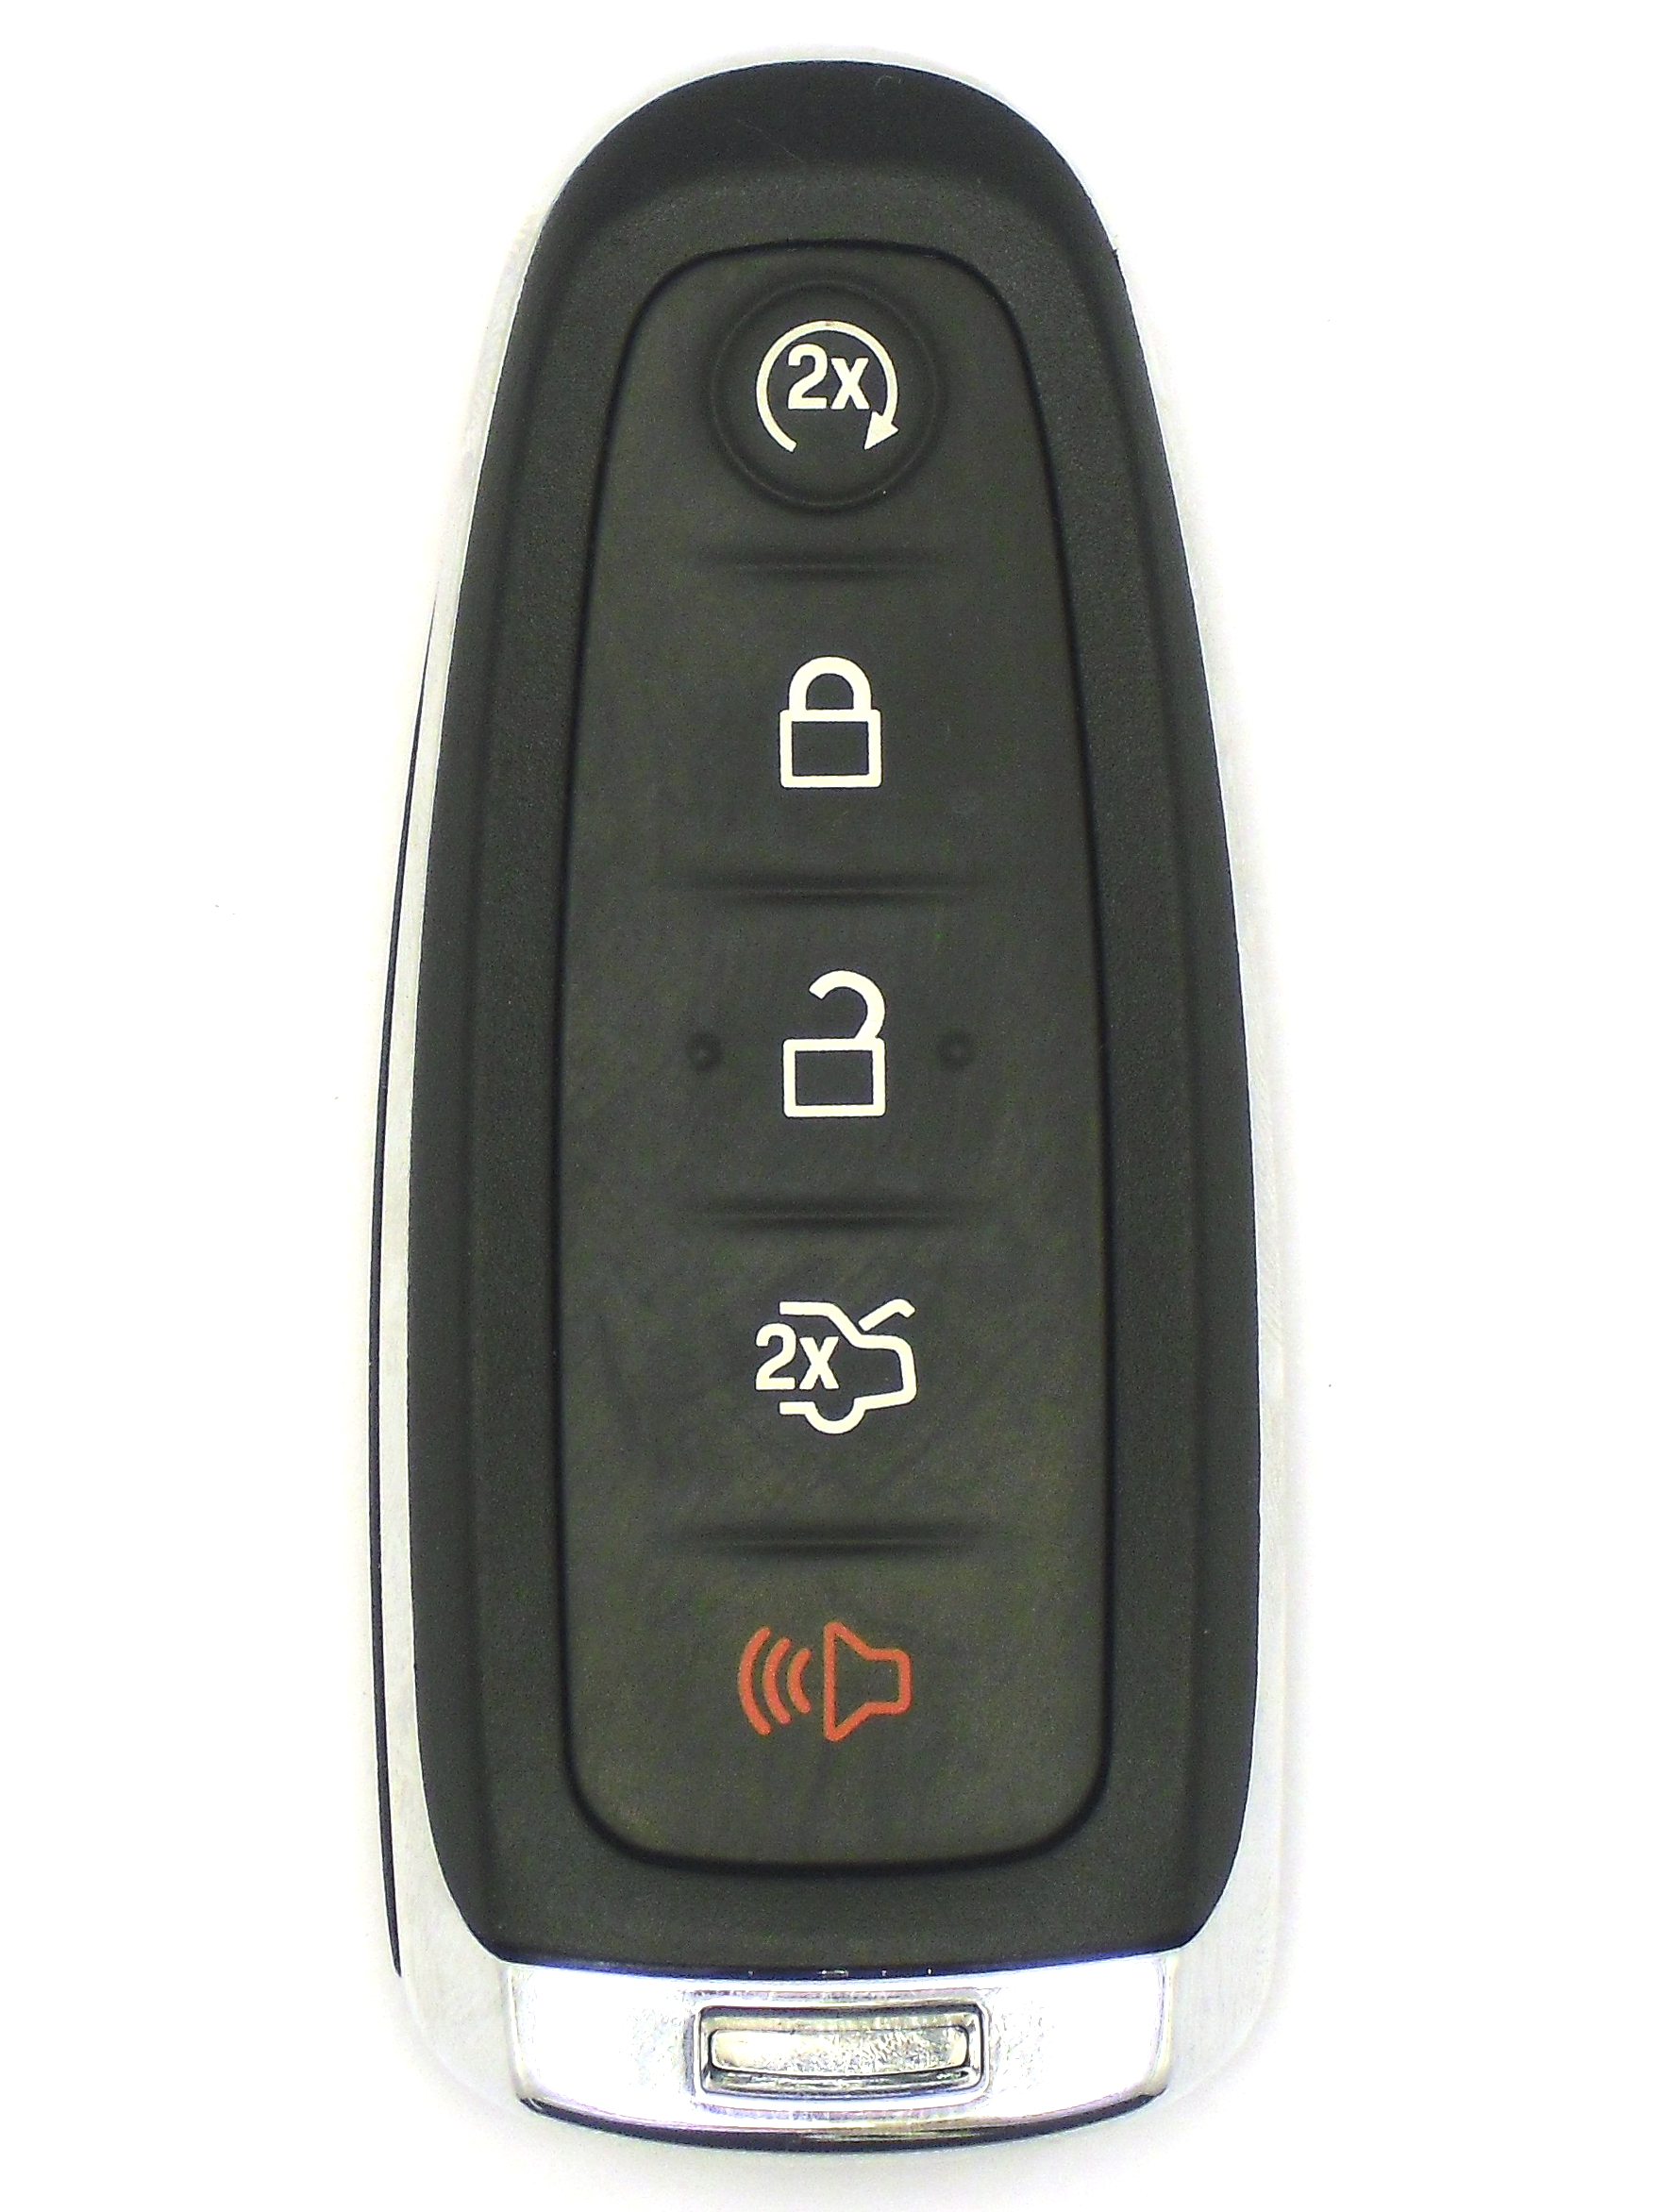 Ford Car Keys Fort Lauderdale further Toyota Yaris additionally Vw Skoda Seat Ford Immo Immobox Siemens Db Ce A further Renault Truck Immobox Texton as well Ford F Transponder Key Blank. on ford transponder key replacement